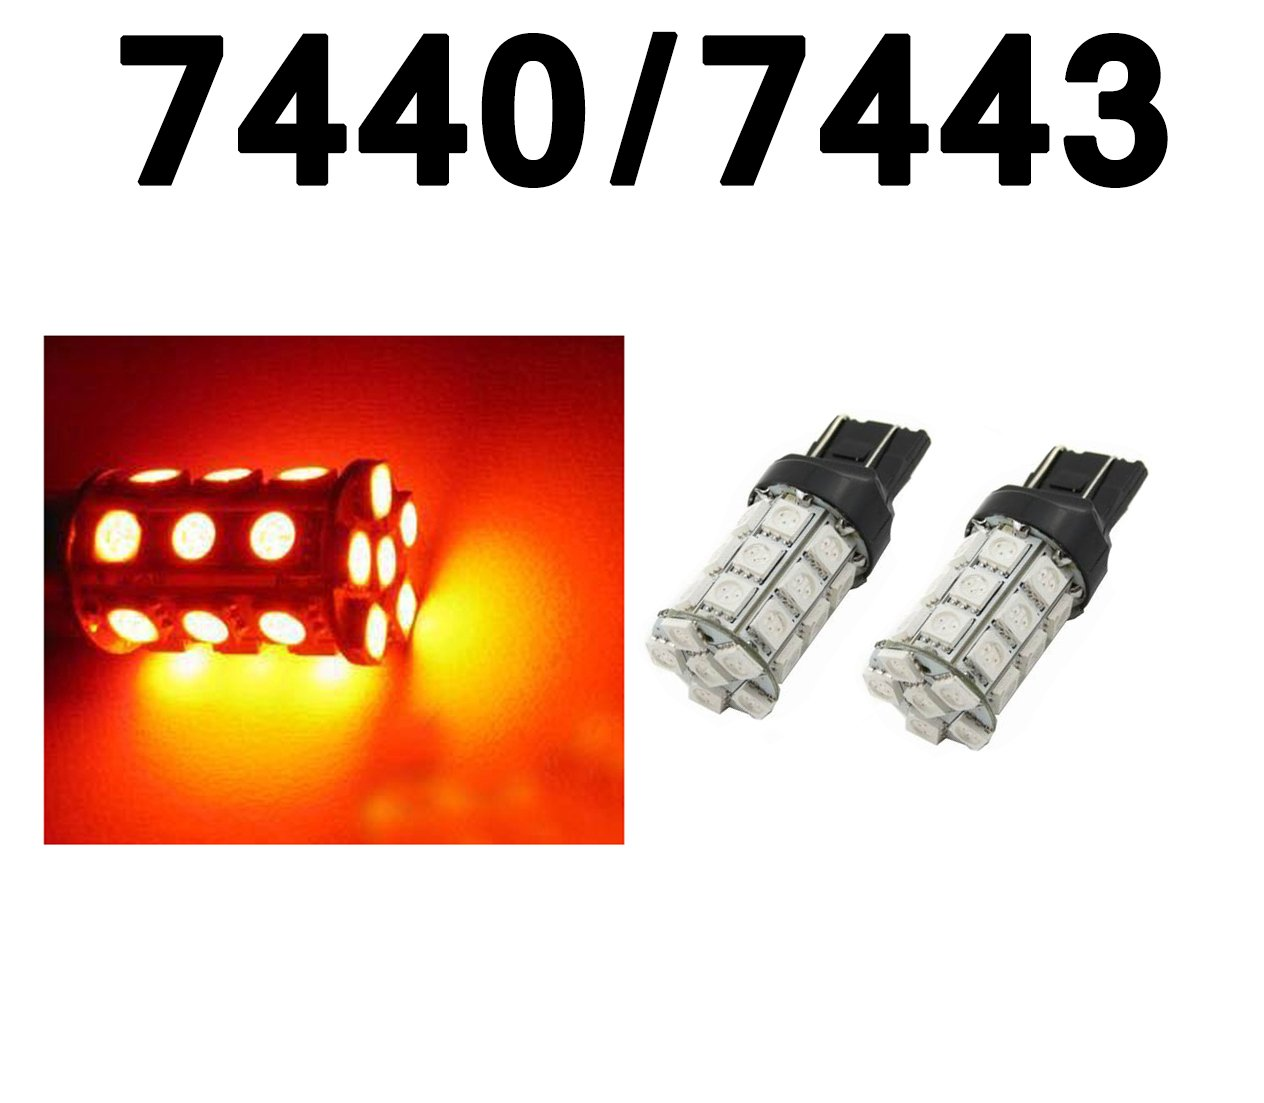 Autolizer 7440 7443 27 Smd 5050 Led Replacement Bulbs Traffic Light Diagram Car Tuning Red For Turn Signal Corner Stop Parking Reverse And